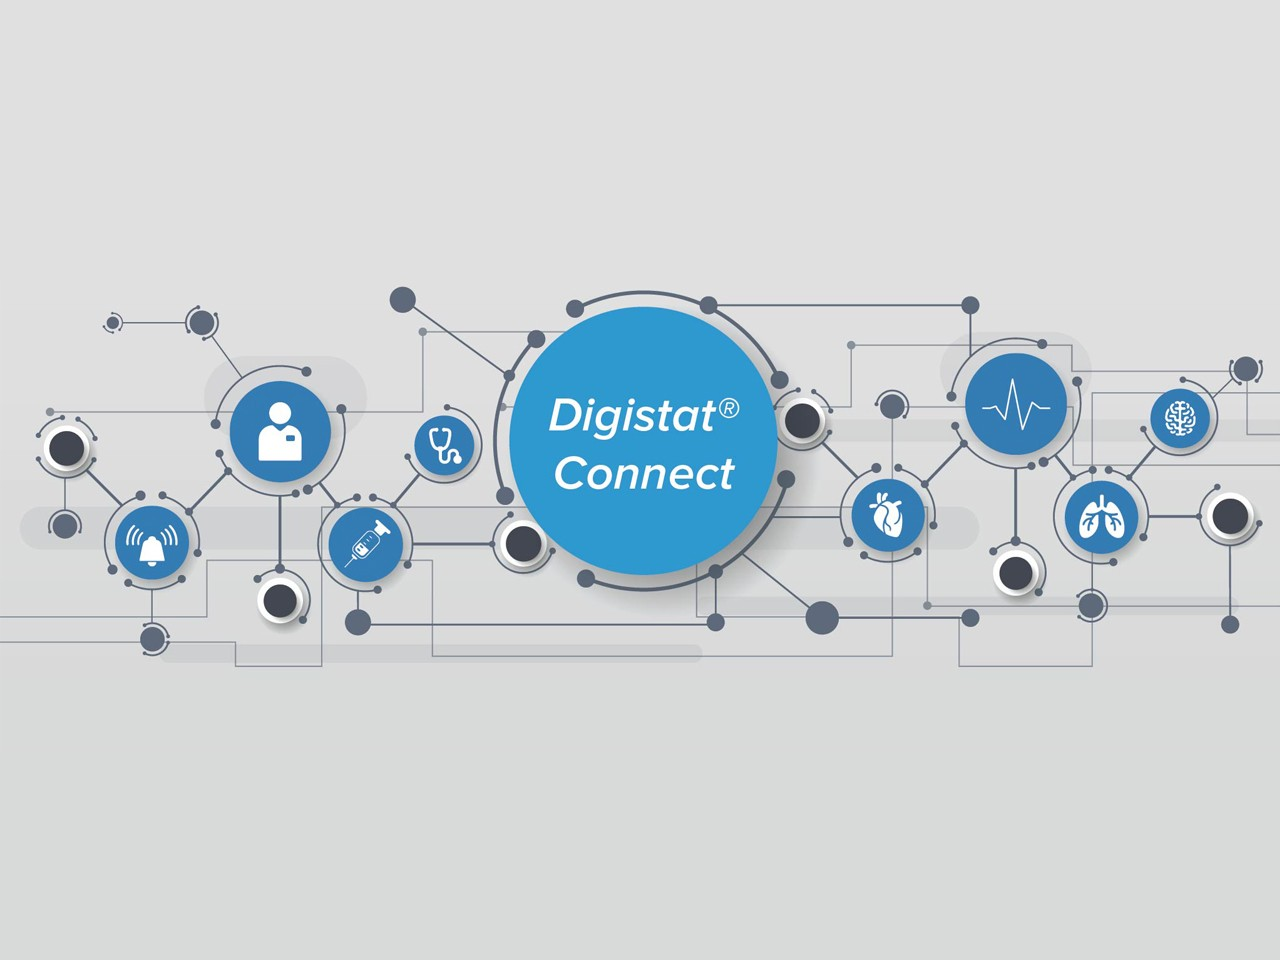 Digistat Connect